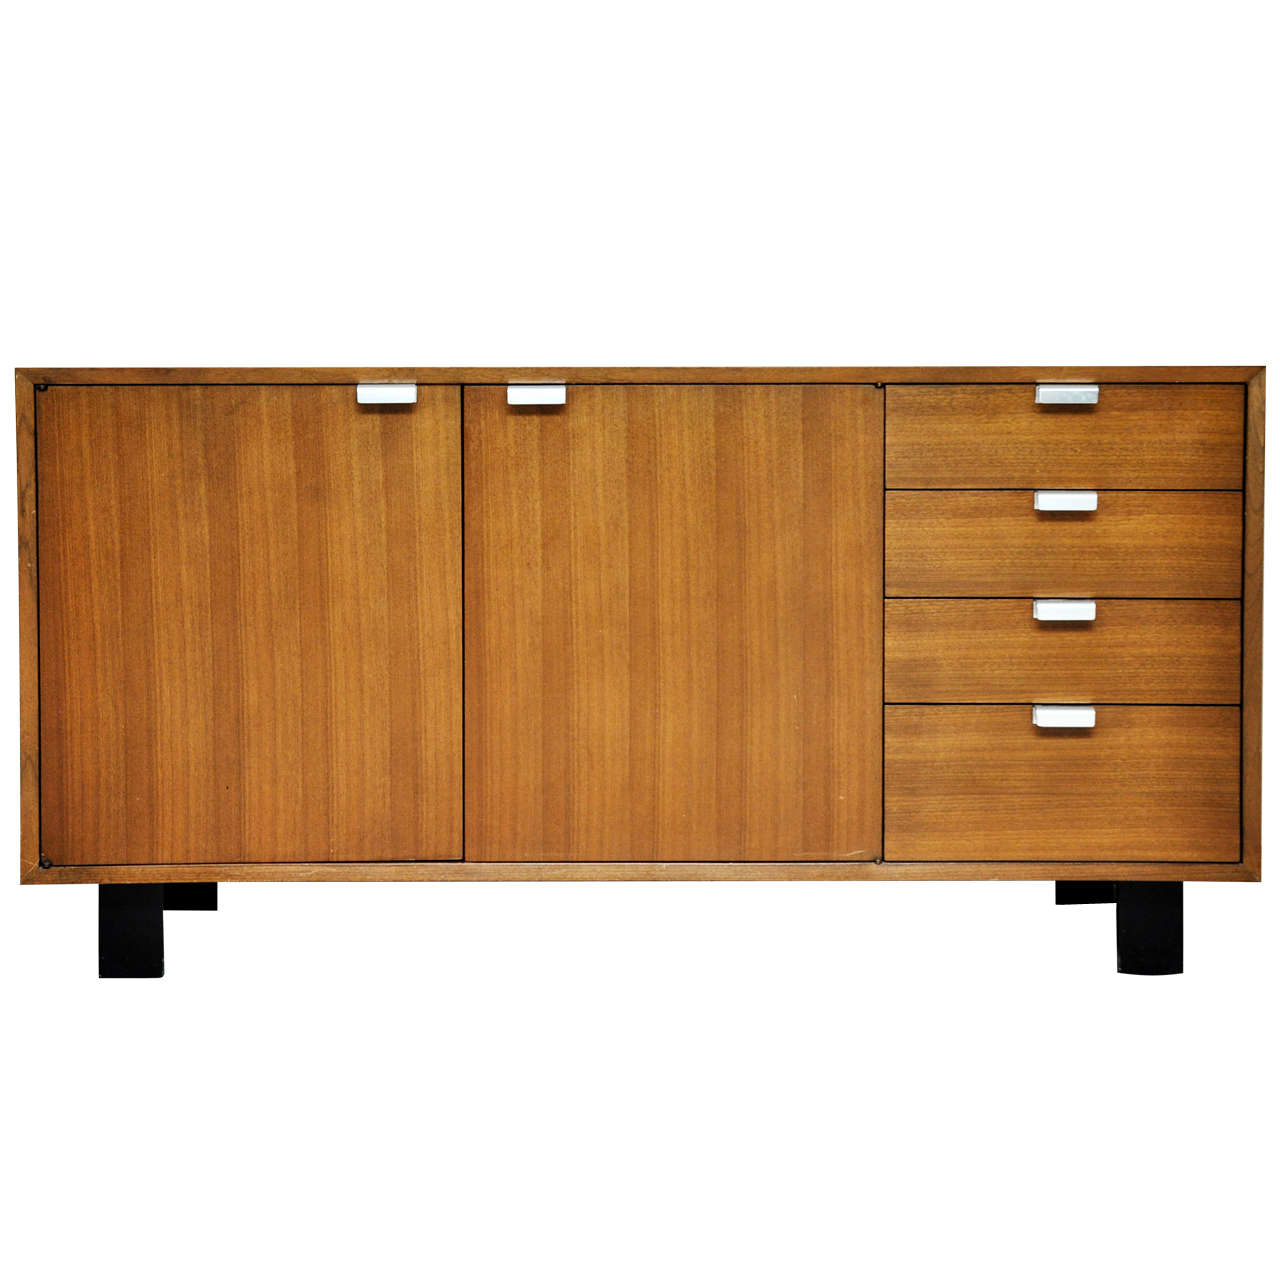 Herman Miller Credenza For Sale